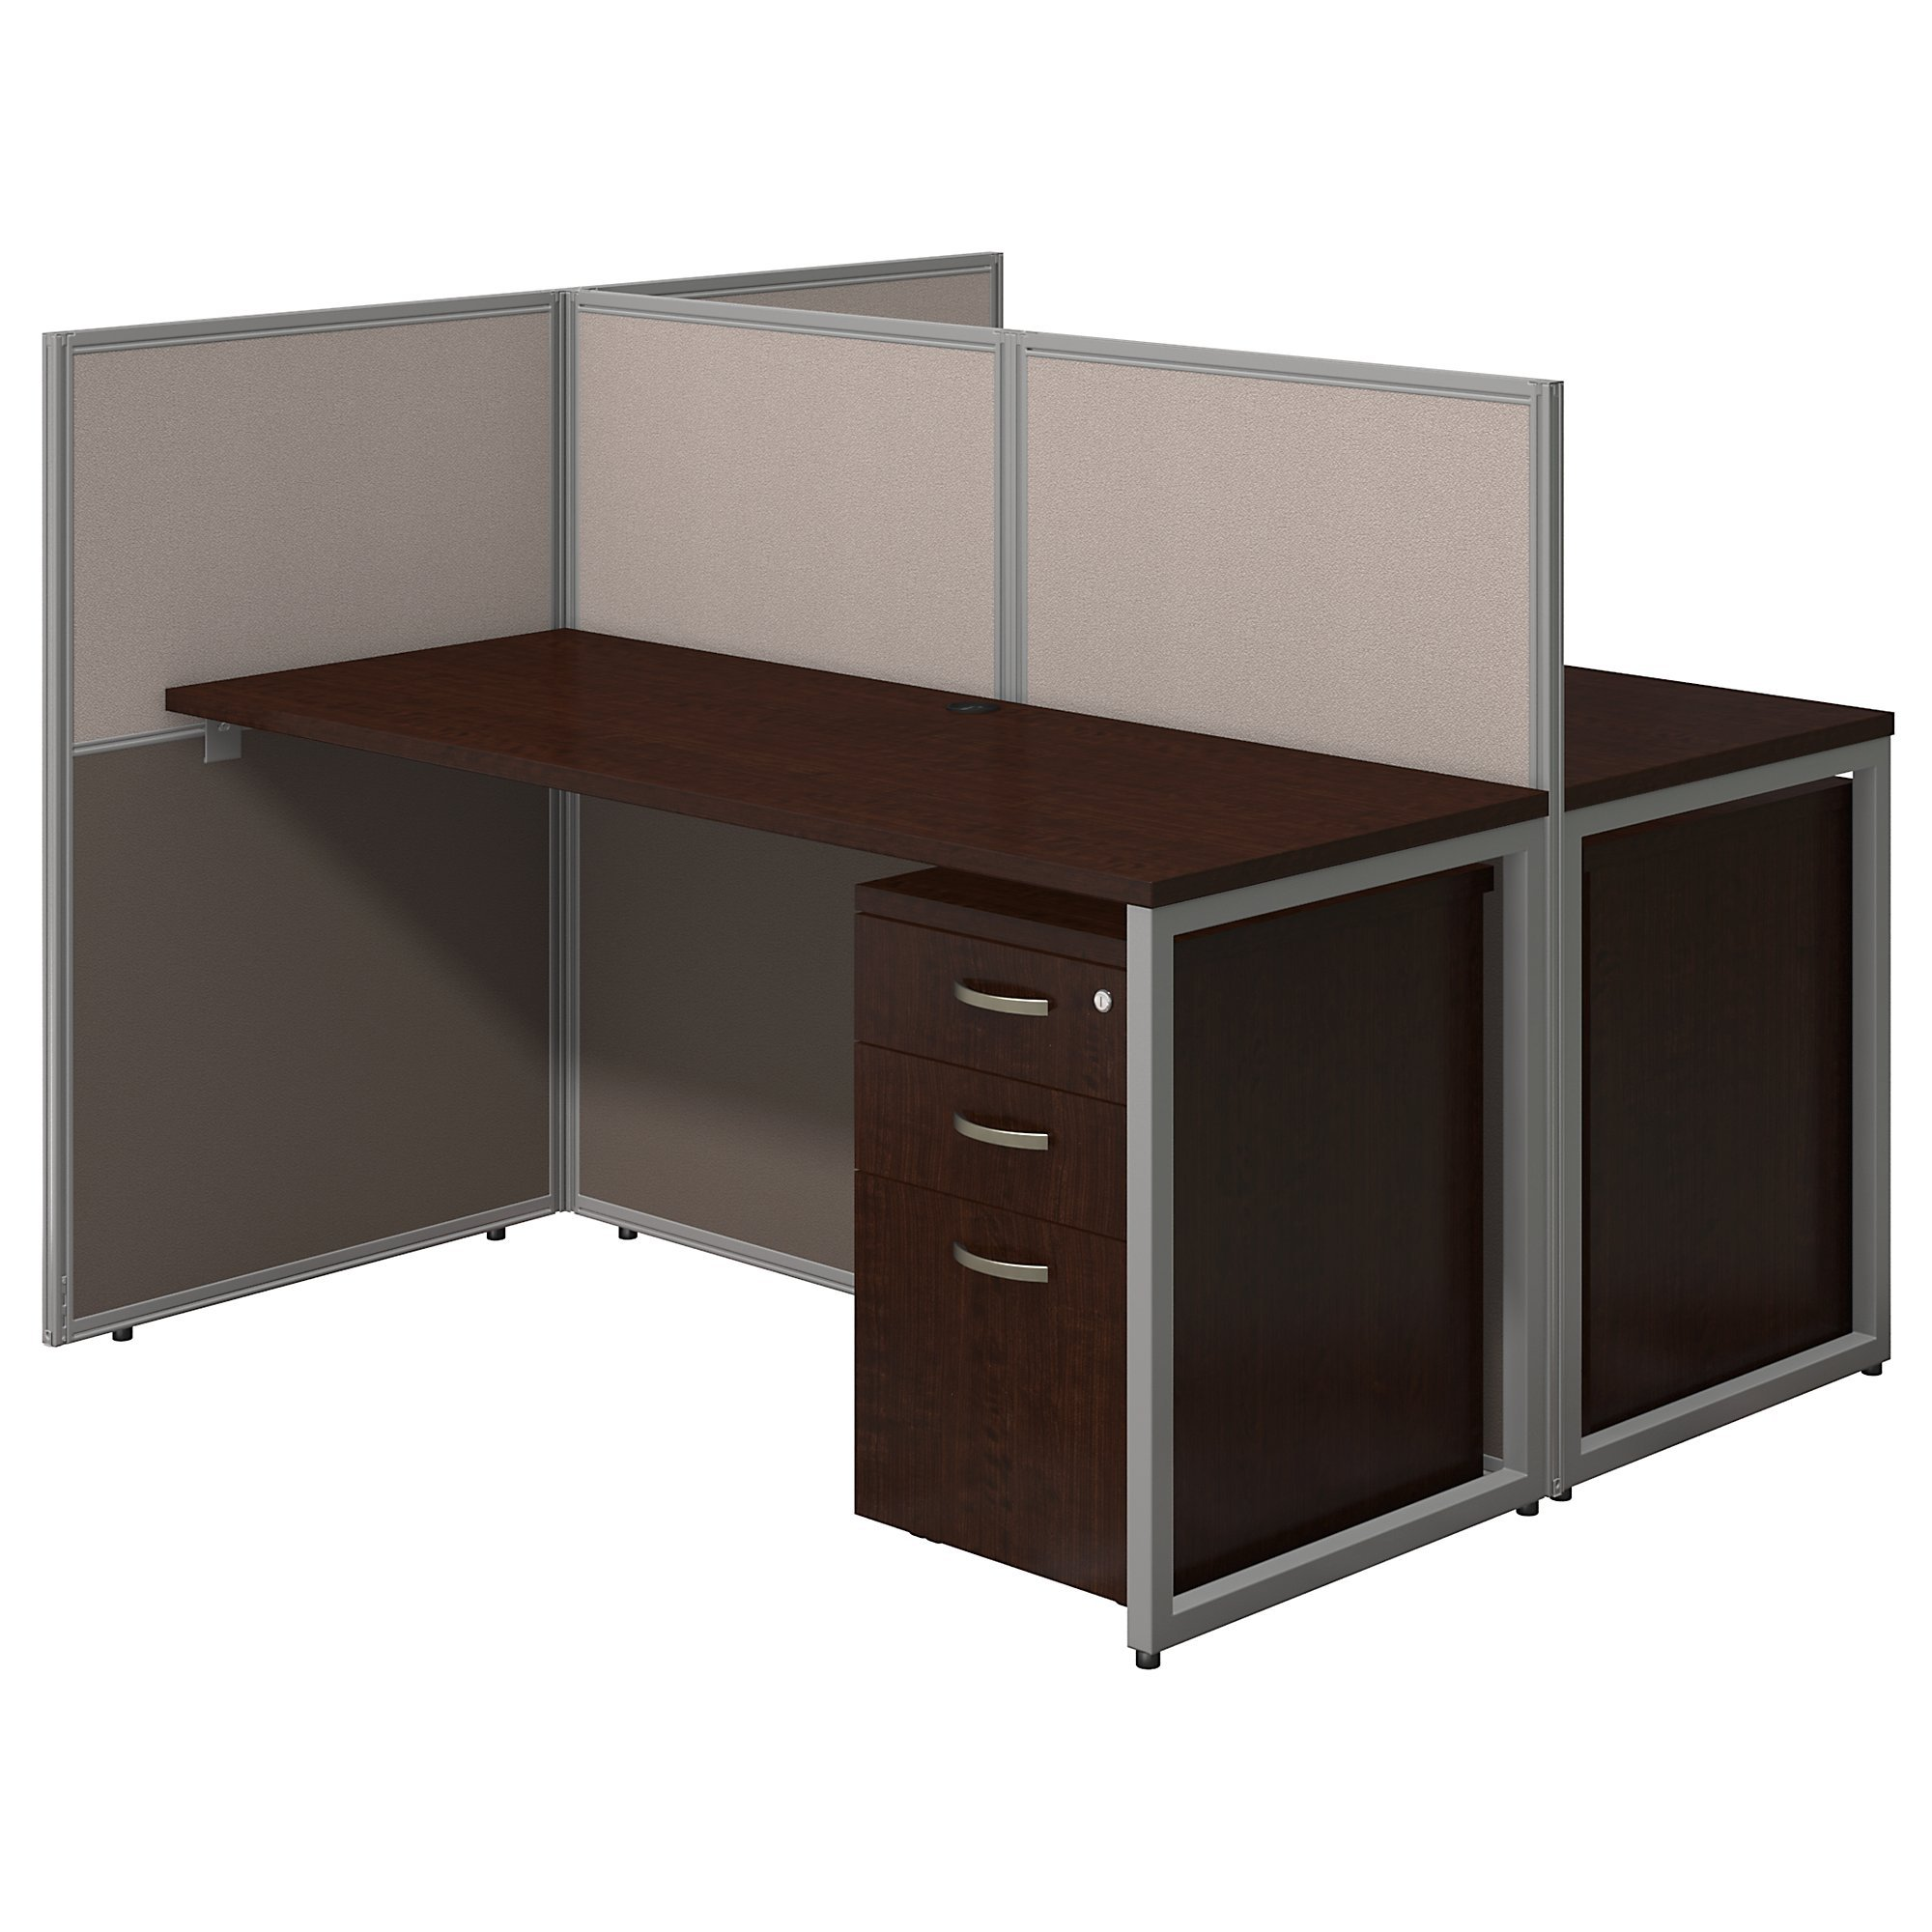 Get Quotations Easy Office 60w Two Person Straight Desk Open With Mobile File Cabinets In Mocha Cherry